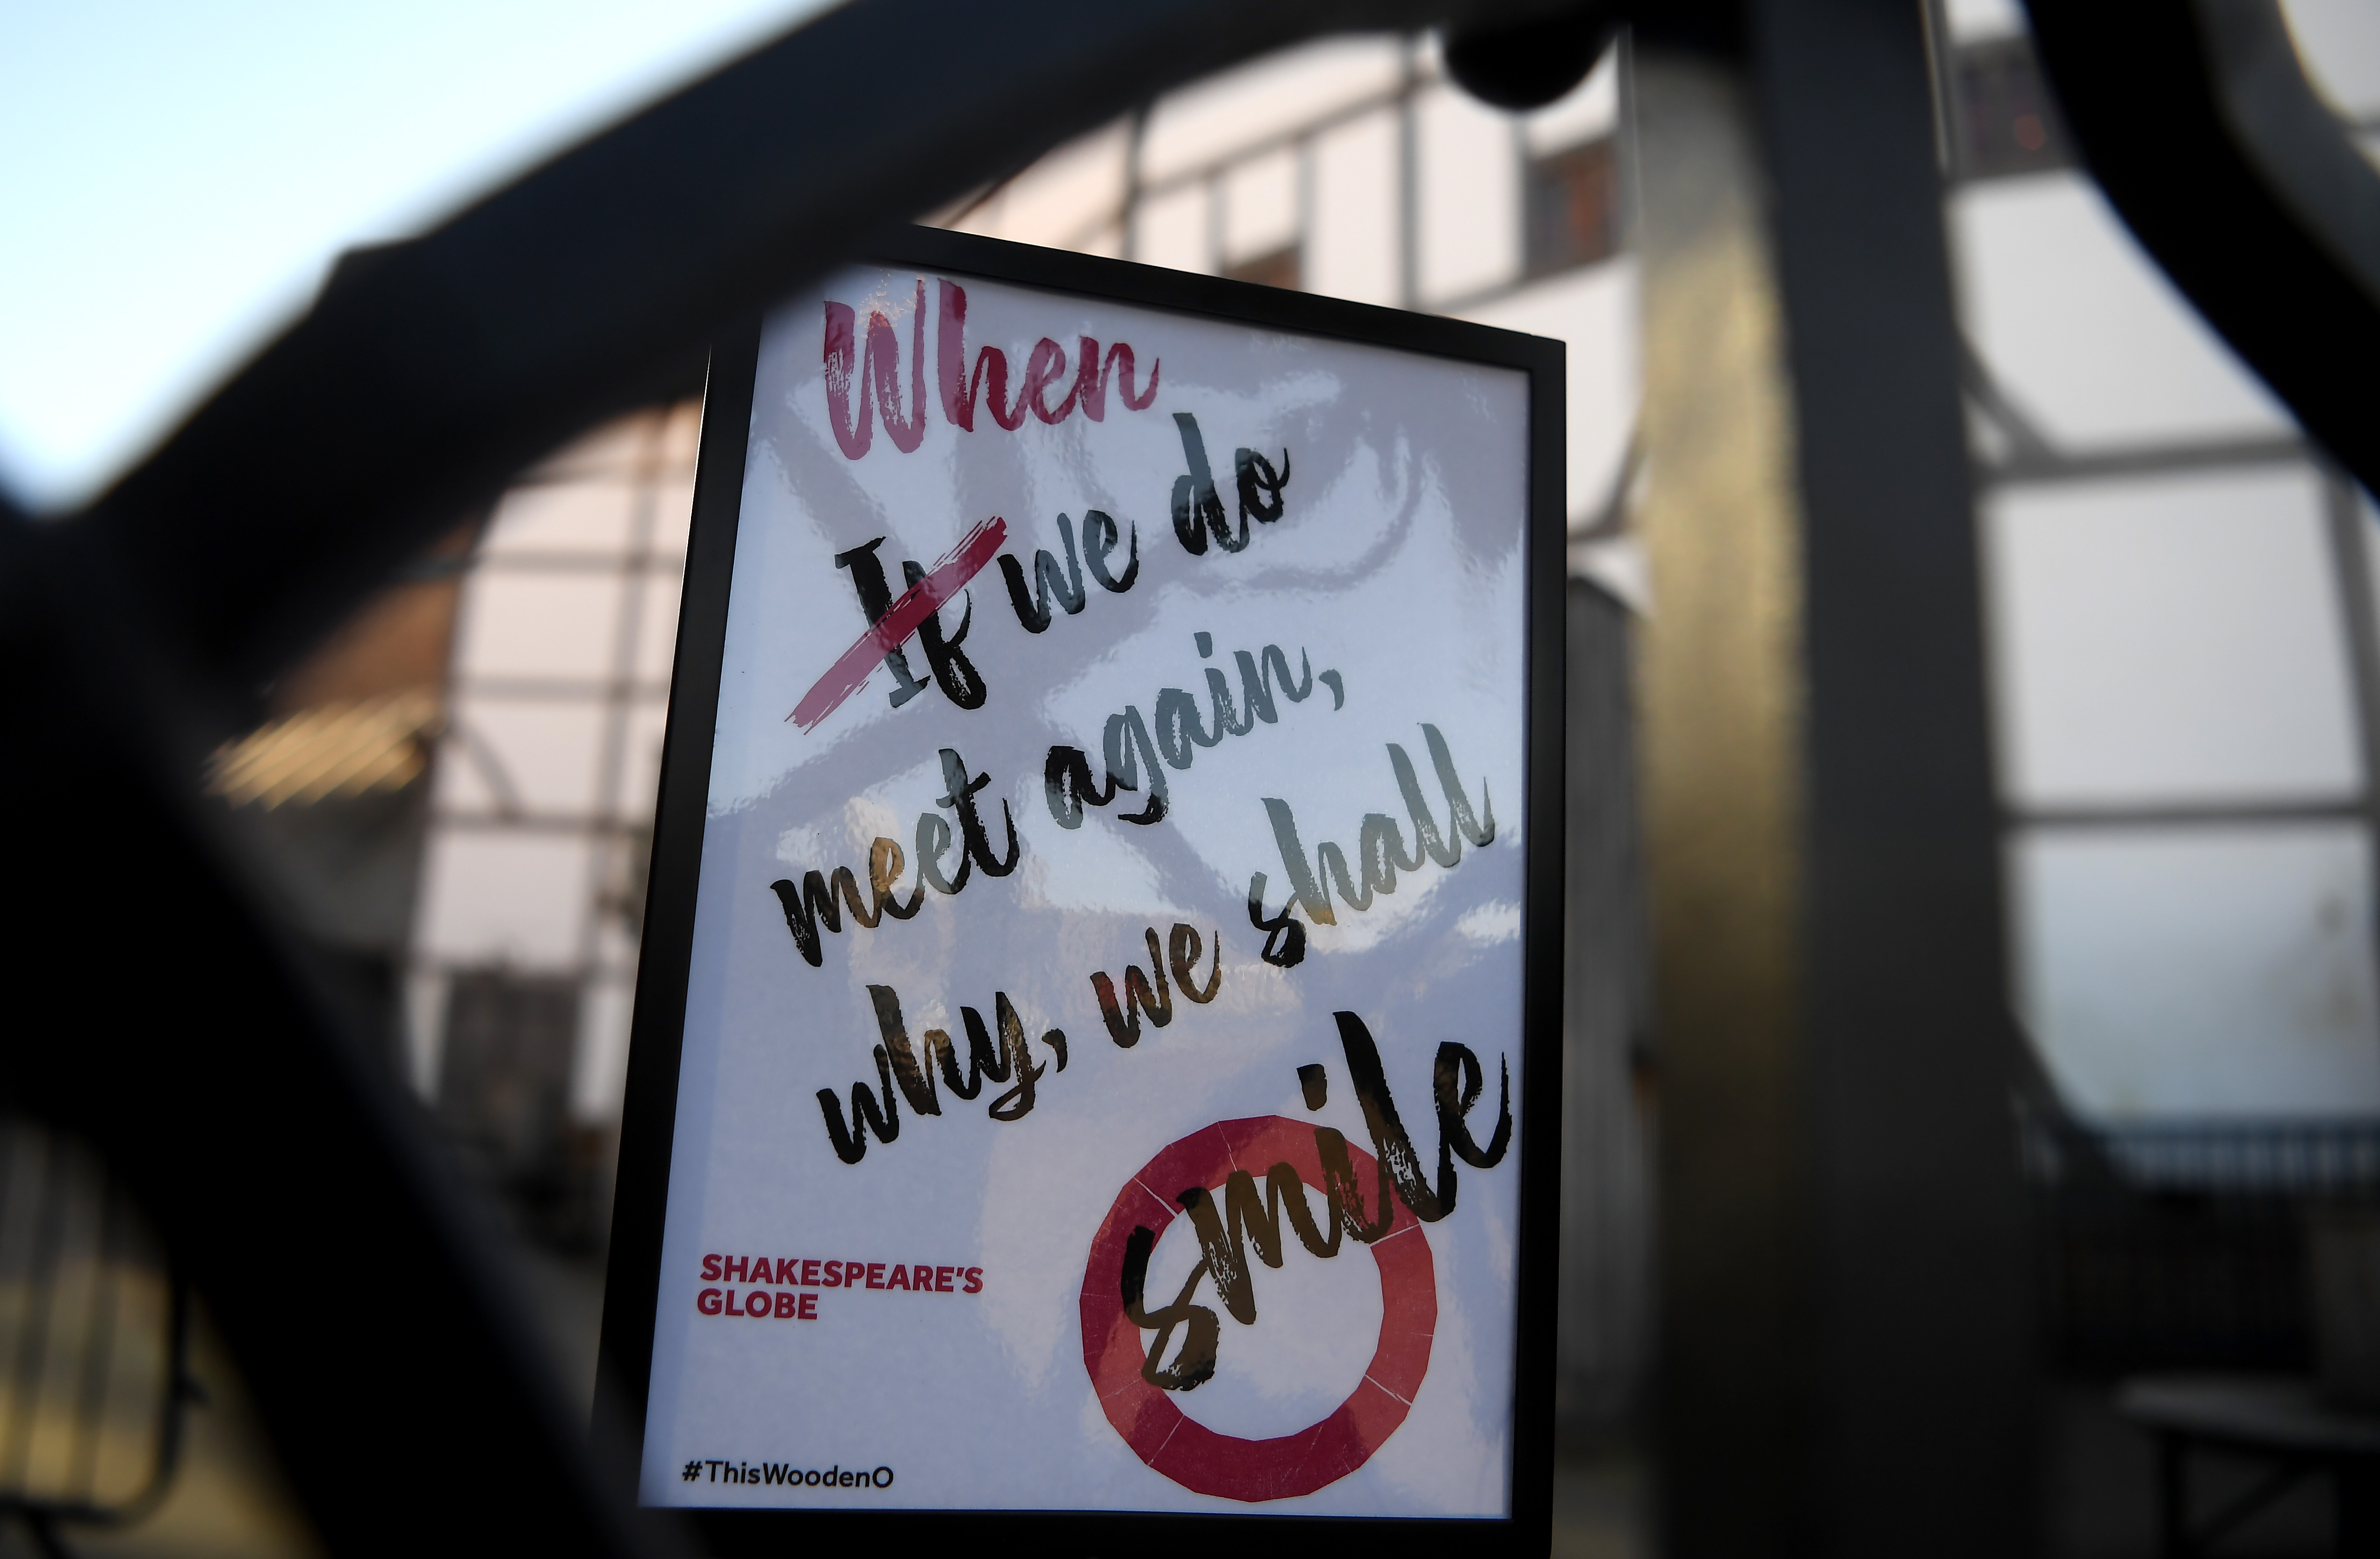 LONDON, ENGLAND - MARCH 22:  A sign is seen outside the Globe Theatre on March 22, 2020 in London, England. Coronavirus (COVID-19) has spread to at least 188 countries, claiming over 13,000 lives and infecting more than 300,000 people. There have now been 5,018 diagnosed cases in the UK and 233 deaths. (Photo by Alex Davidson/Getty Images)